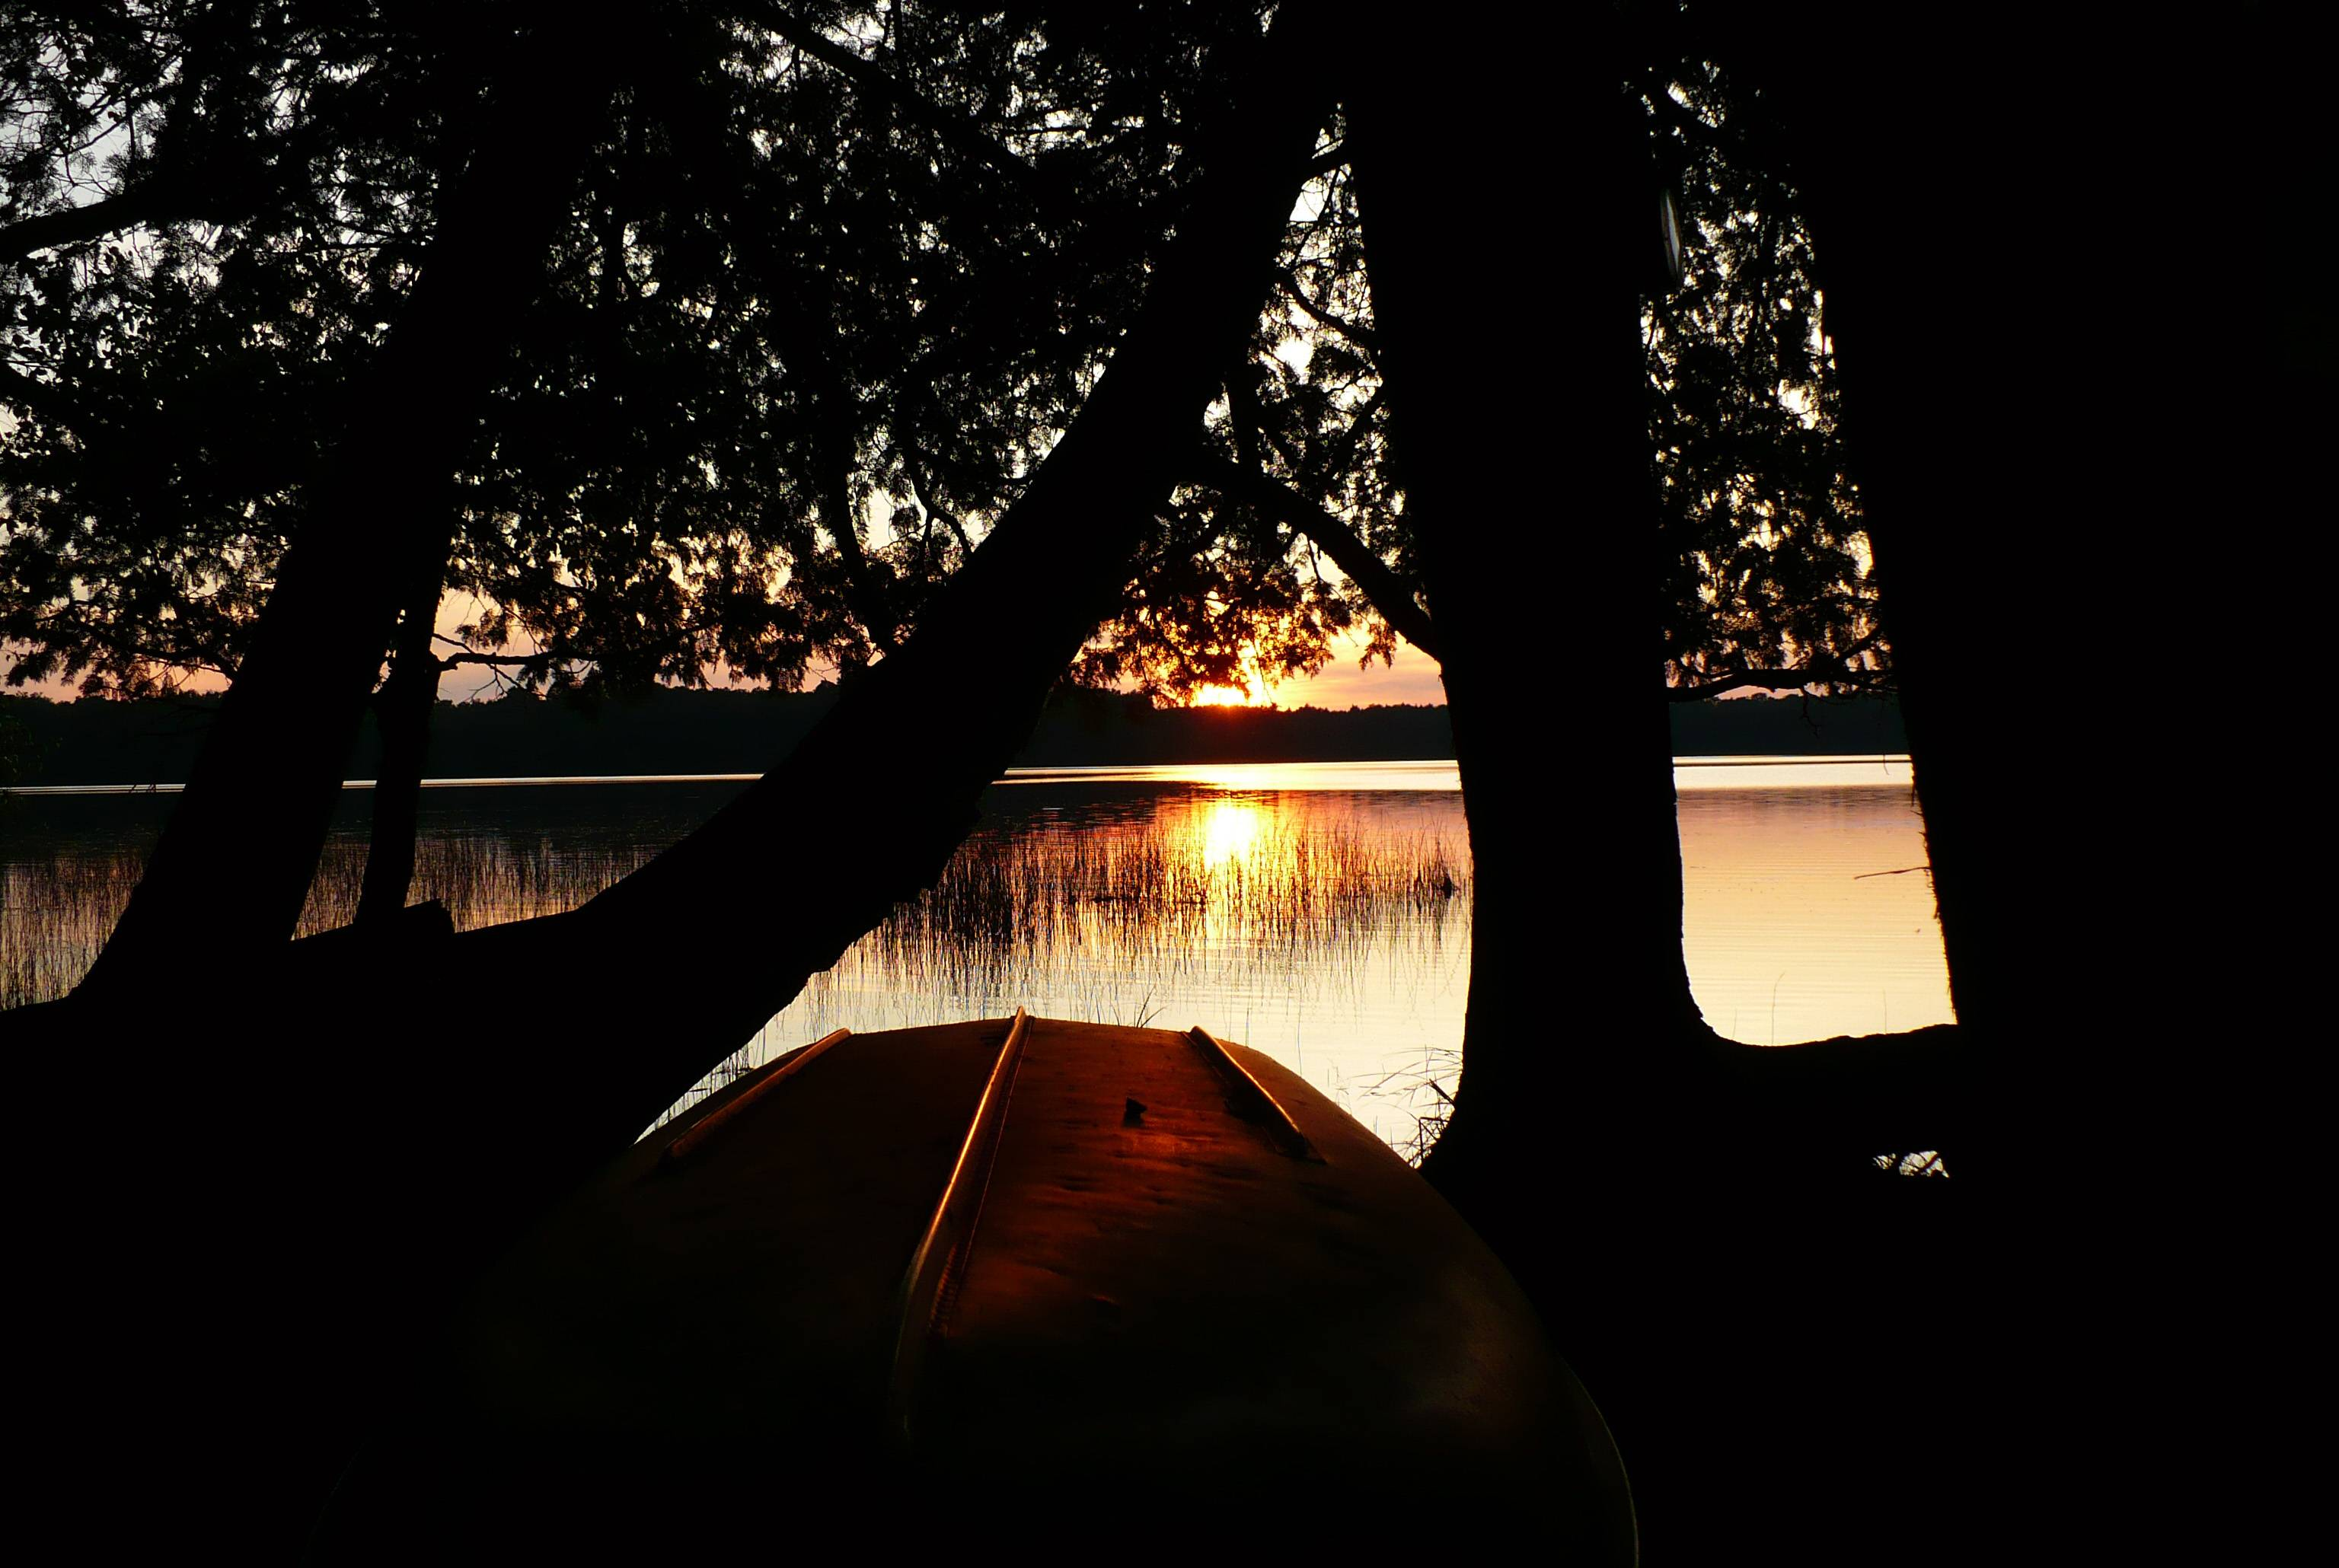 This was taken on Palmer Lake in northern Wisconsin. I liked the way the pines looked dark as they framed the image of the setting sun on the lake and its reflection on the bottom of the boat.